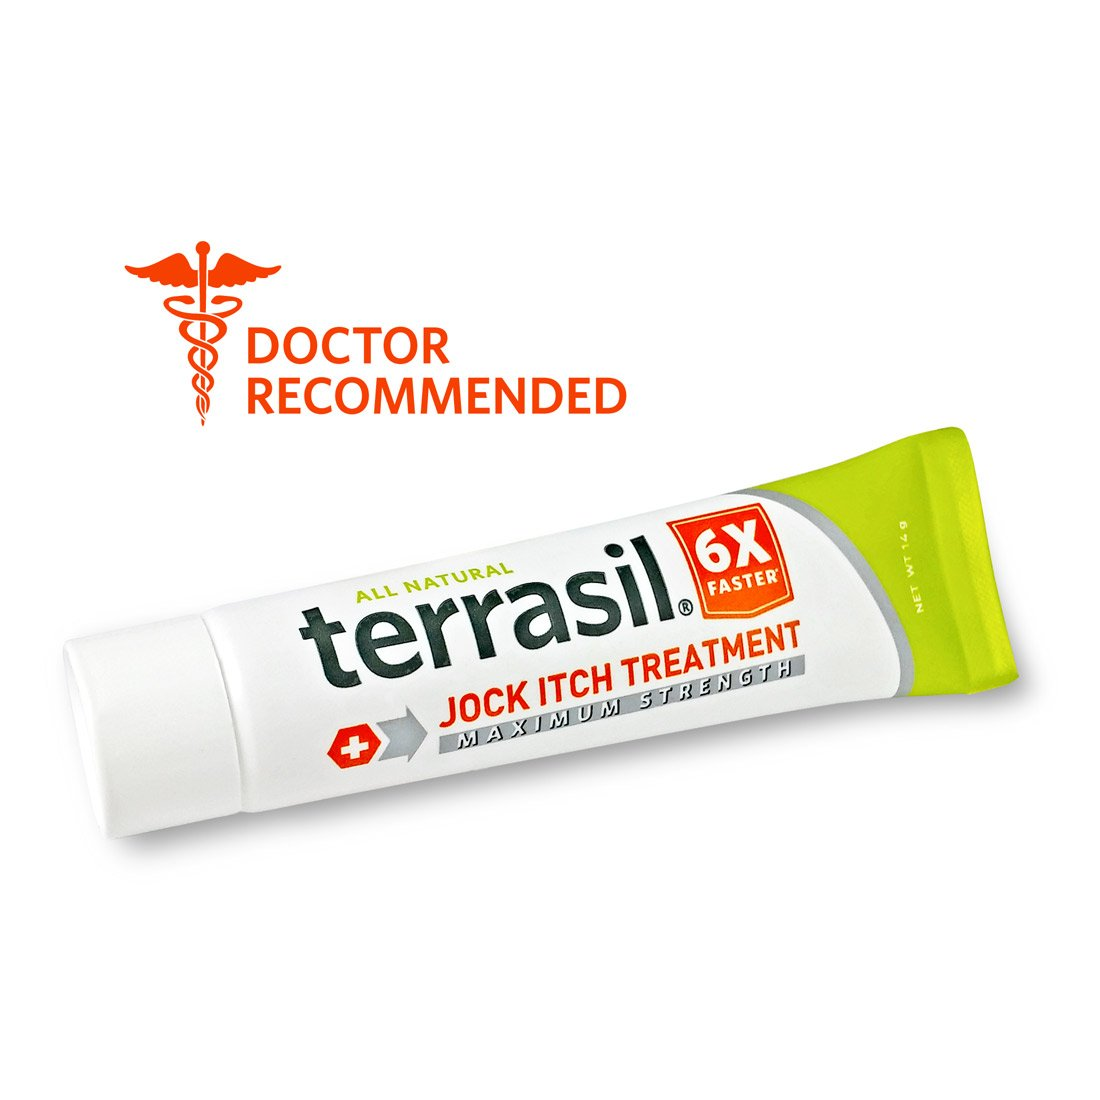 Jock Itch Treatment MAX - 6X Faster Than Leading Brands Dr. Recommended 100% Guaranteed All Natural Antifungal Ointment Treats Tinea Cruris Relieves Itch Irritation by Terrasil® 14 Grams by Aidance Skincare & Topical Solutions